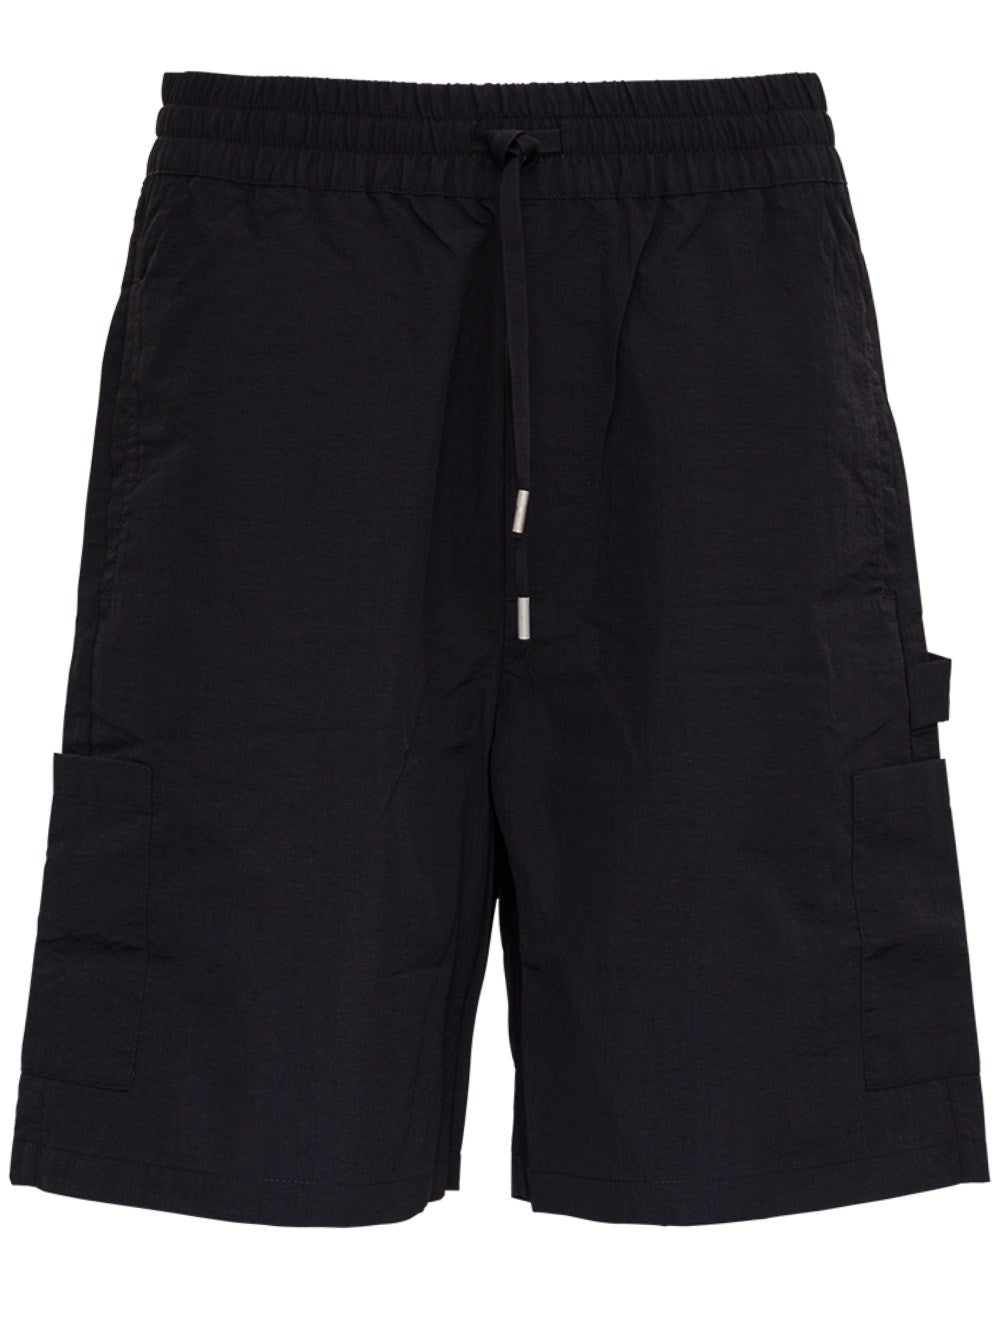 Heron Preston BLACK NYLON BERMUDA SHORTS